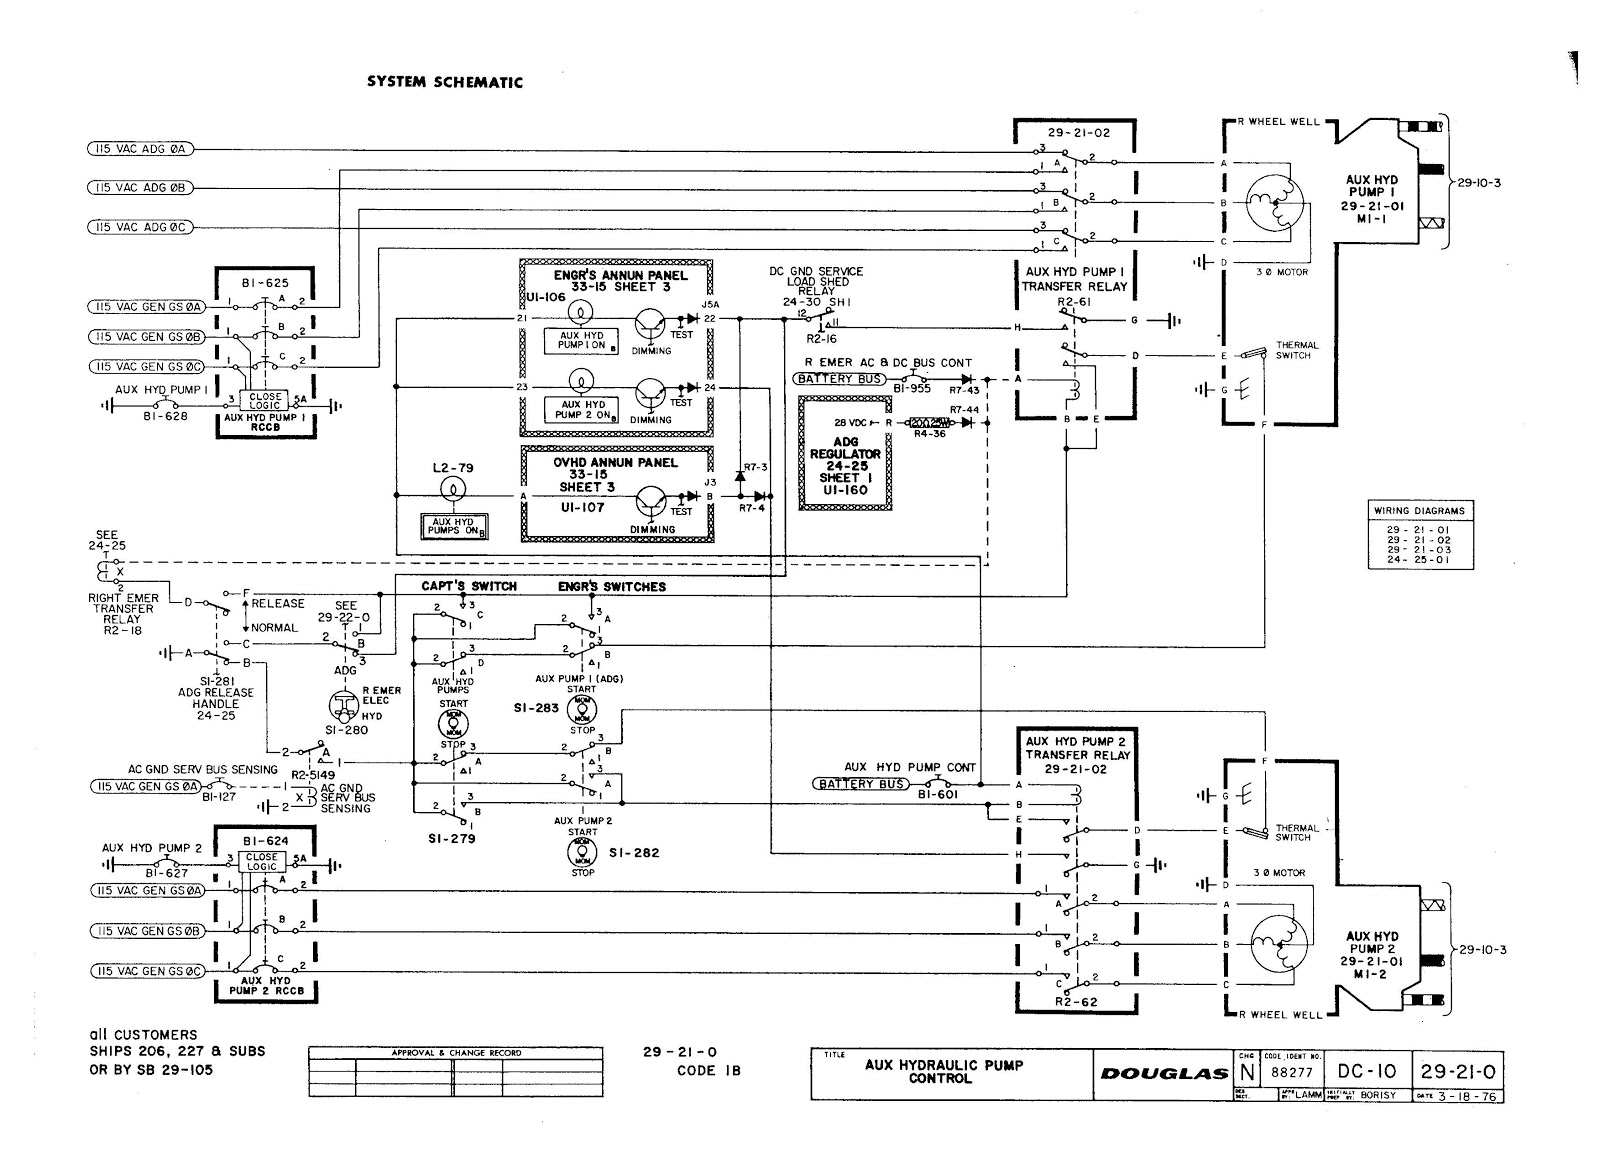 Schematic+diagram+dc+10+hydraulic+001 part 66 virtual school aircraft wiring and schematic diagrams how to read schematic wiring diagrams at gsmx.co